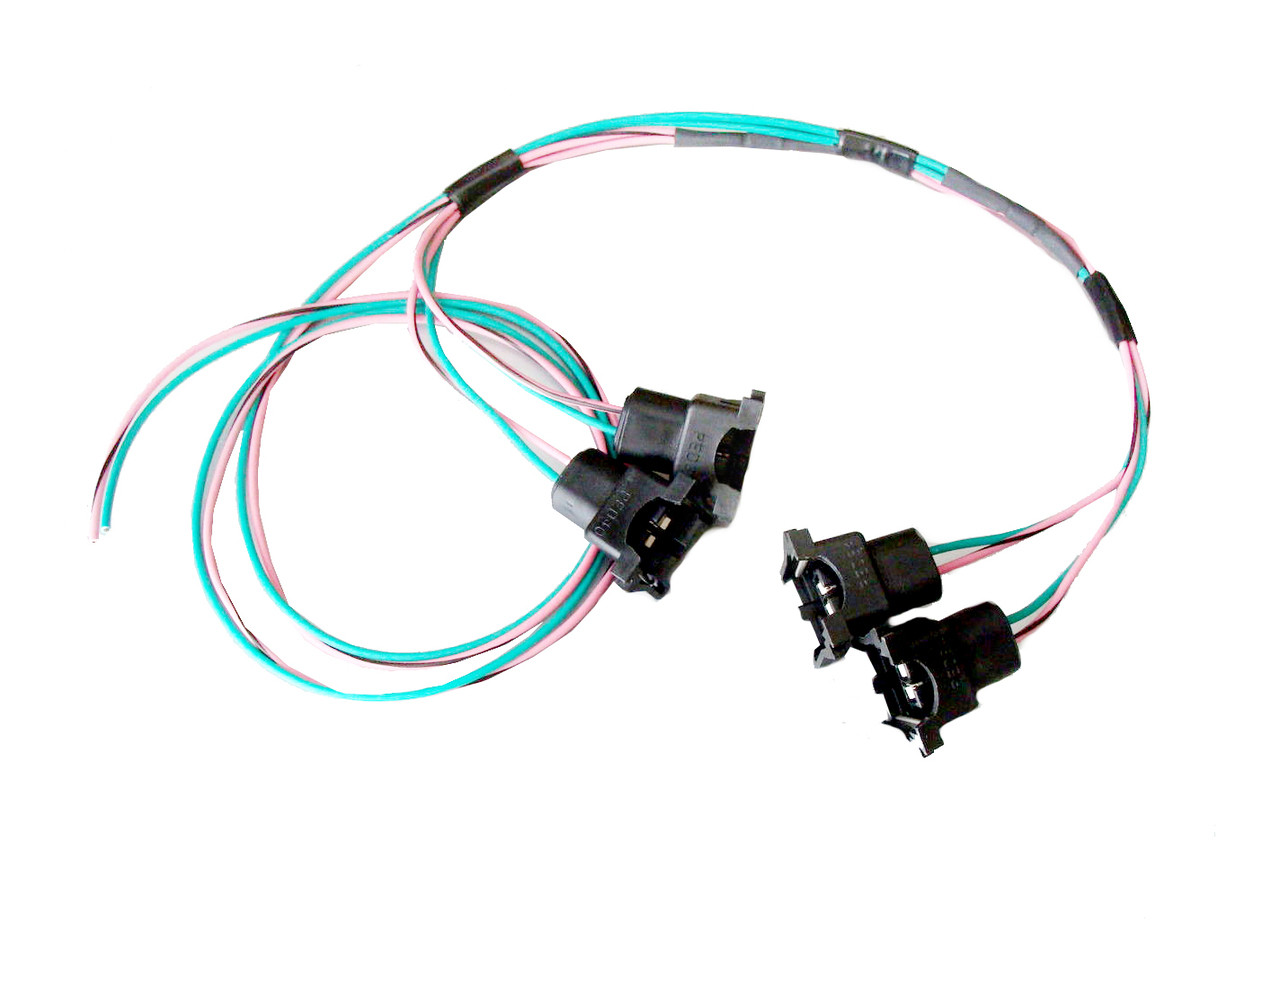 Ls1 Wiring Harness Stand Alone : Stand alone lt wiring harness ls